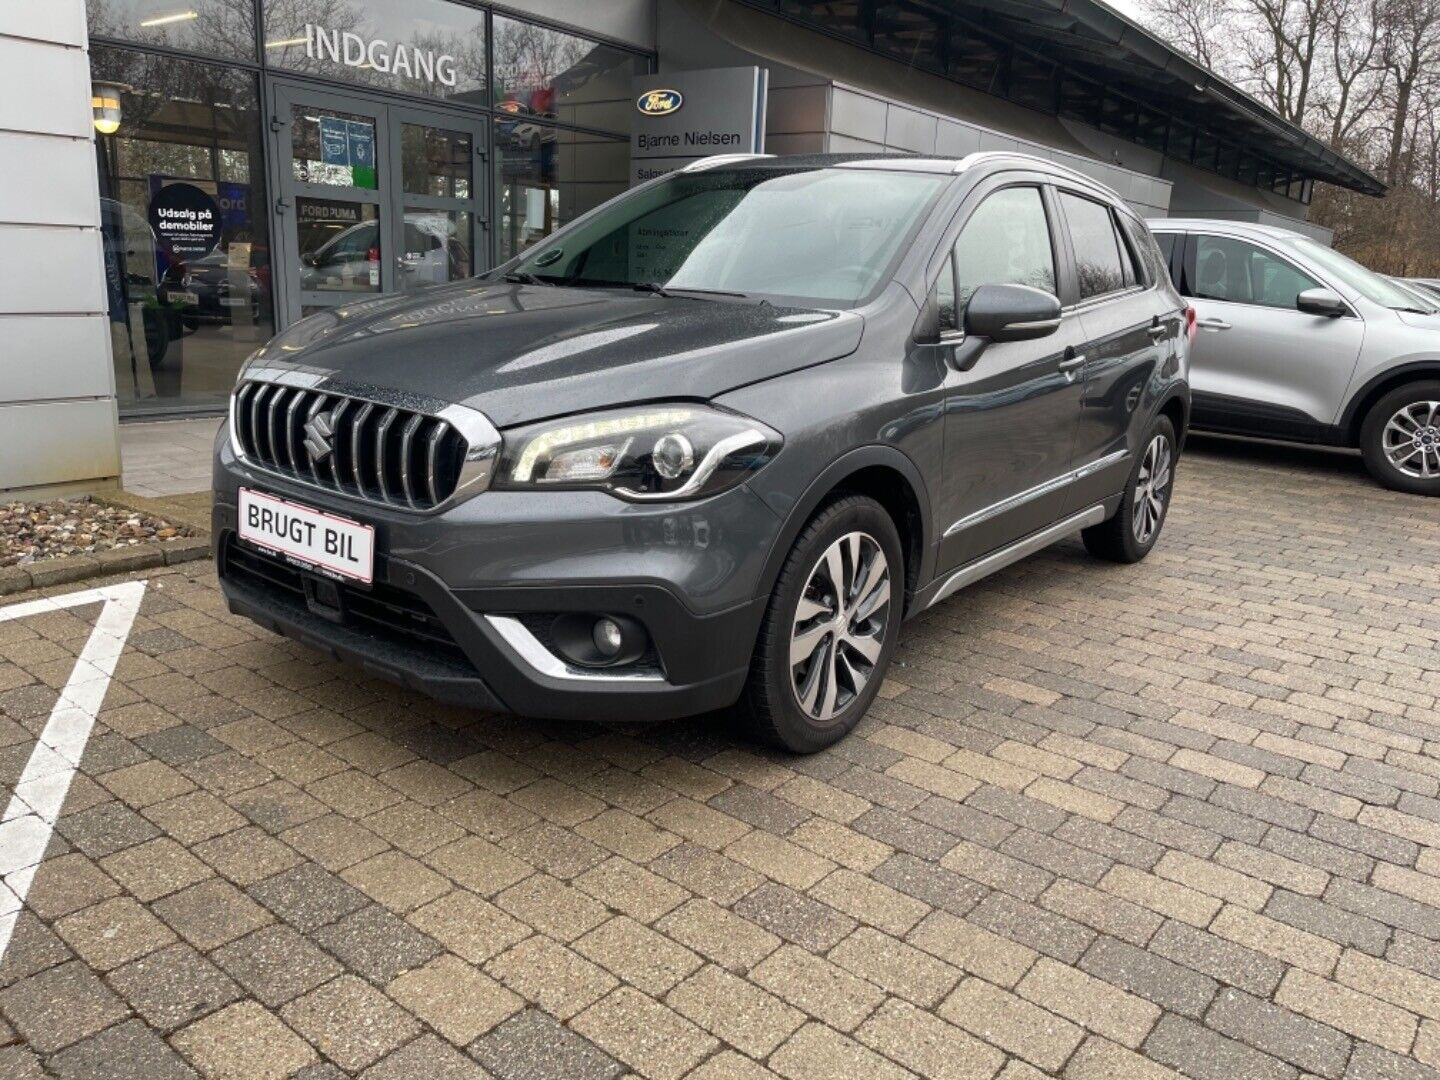 Suzuki S-Cross 1,4 Boosterjet Active